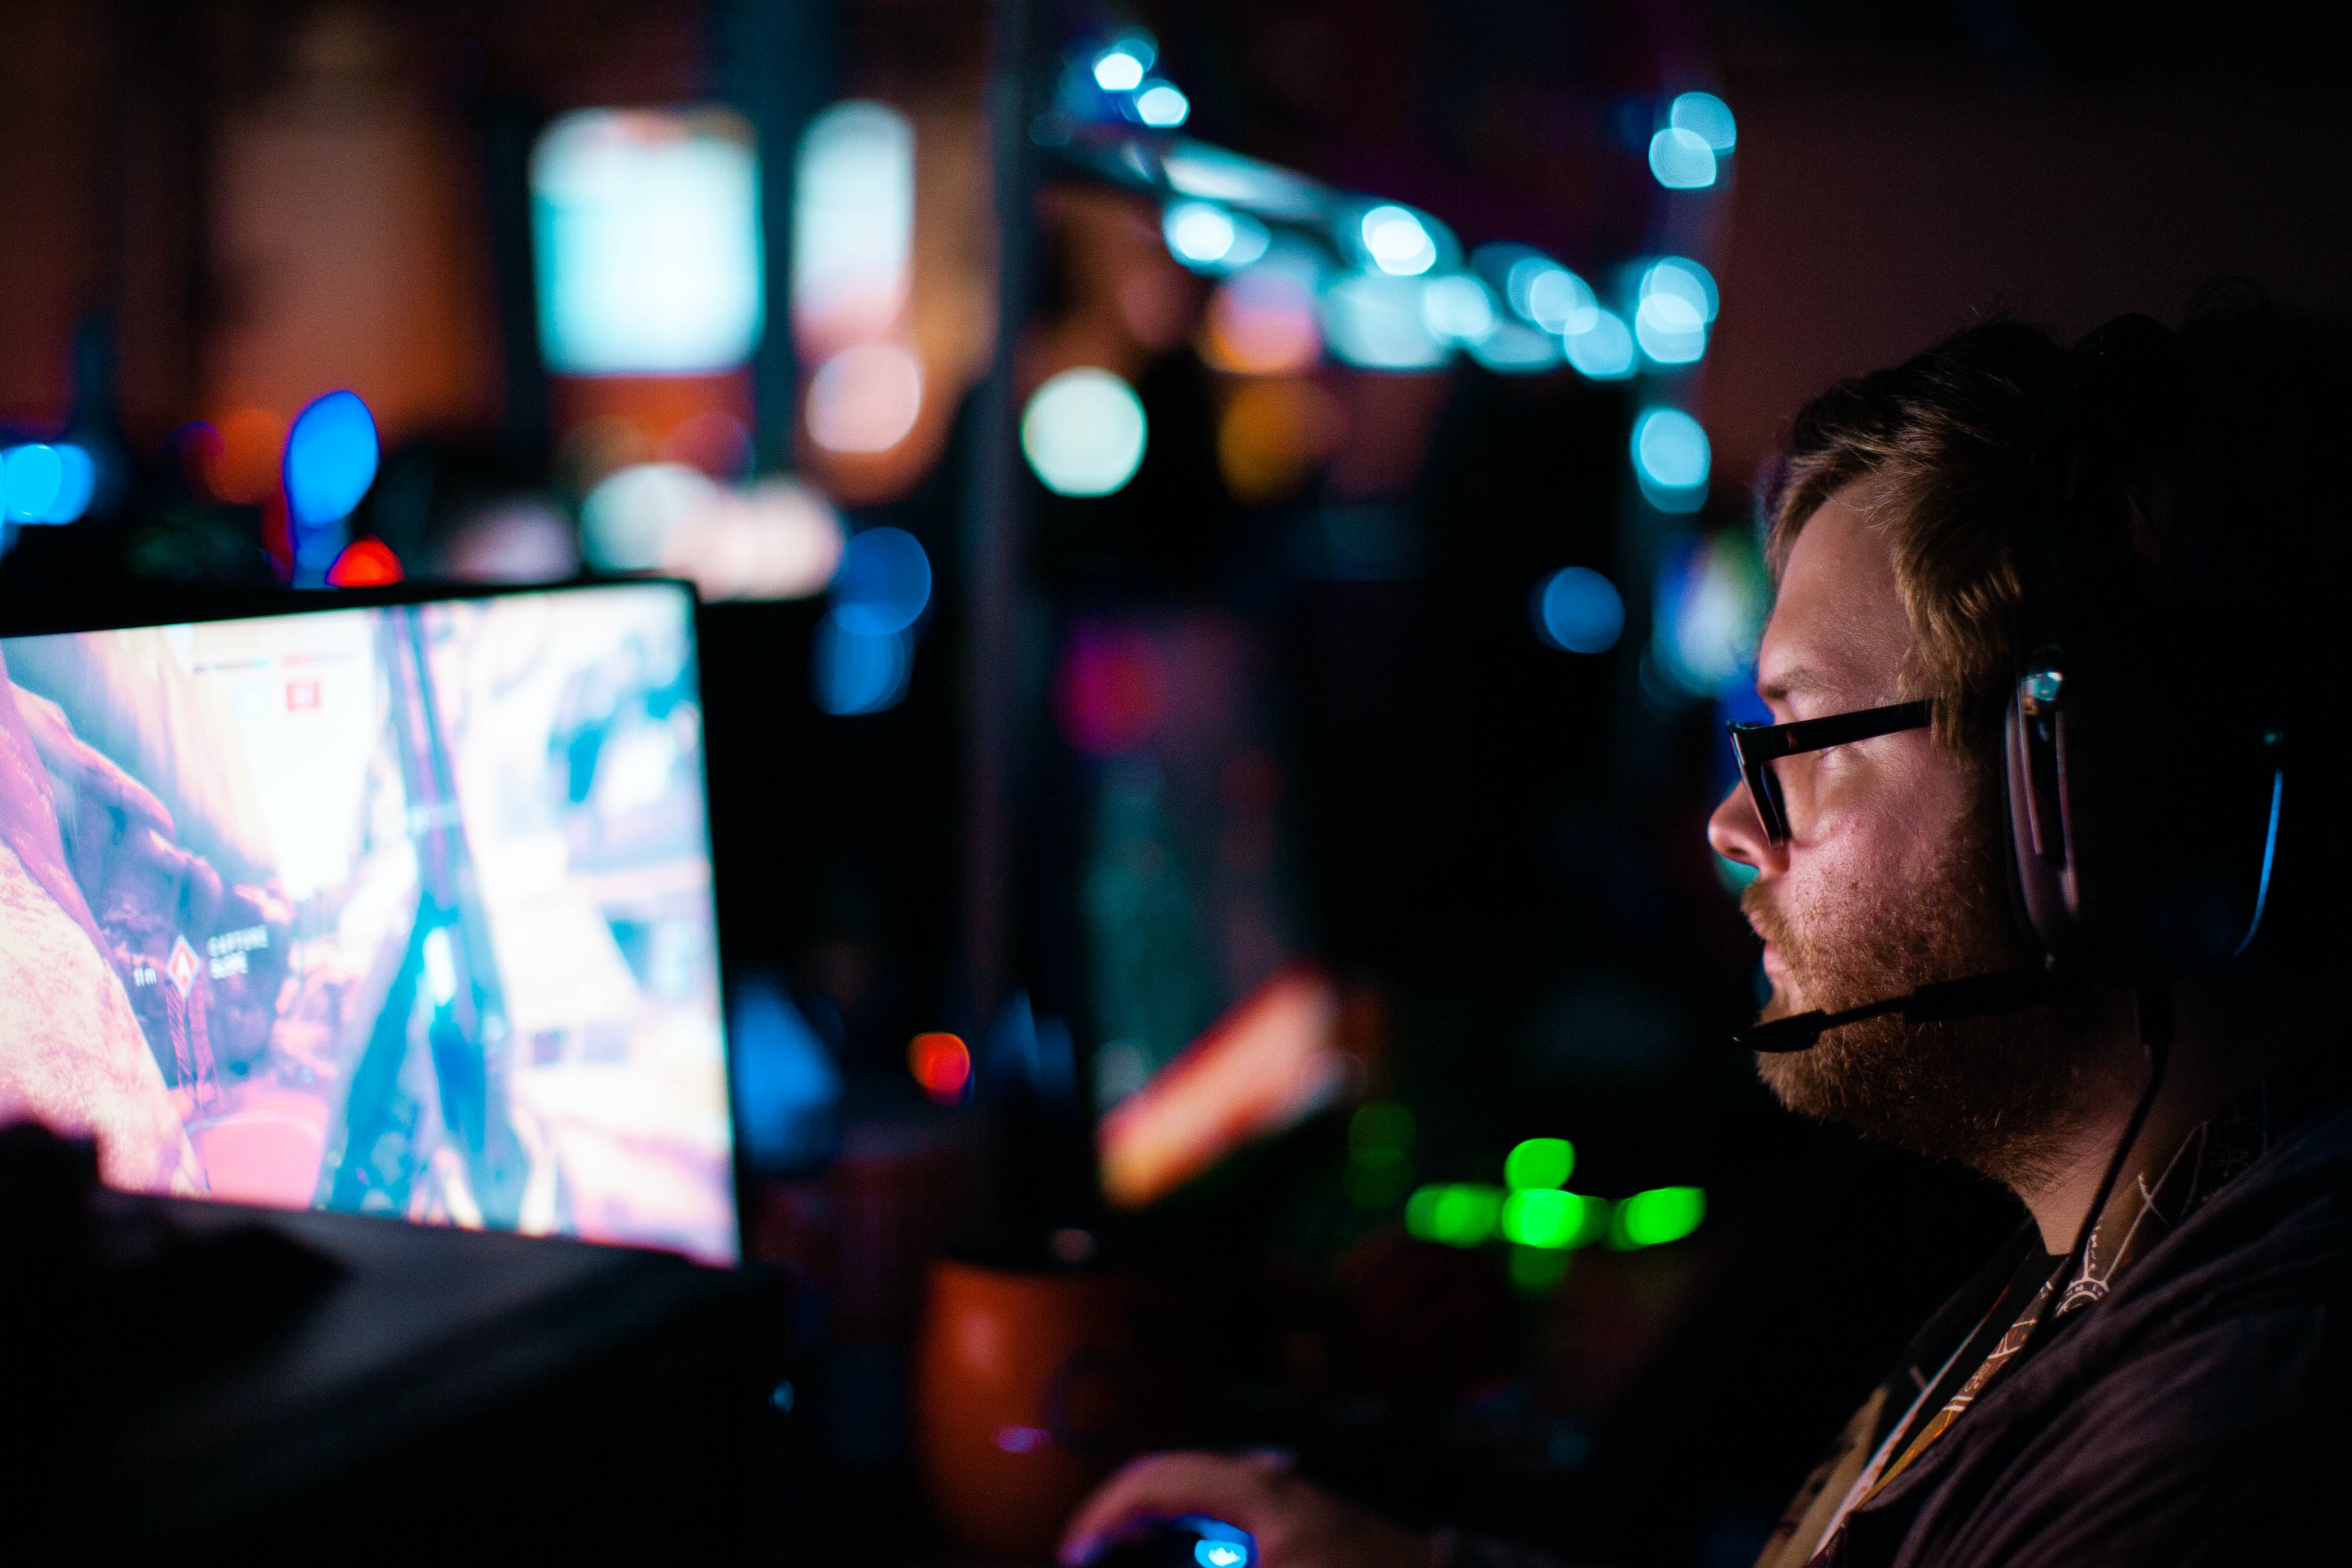 Man wearing headset playing a video game on a computer